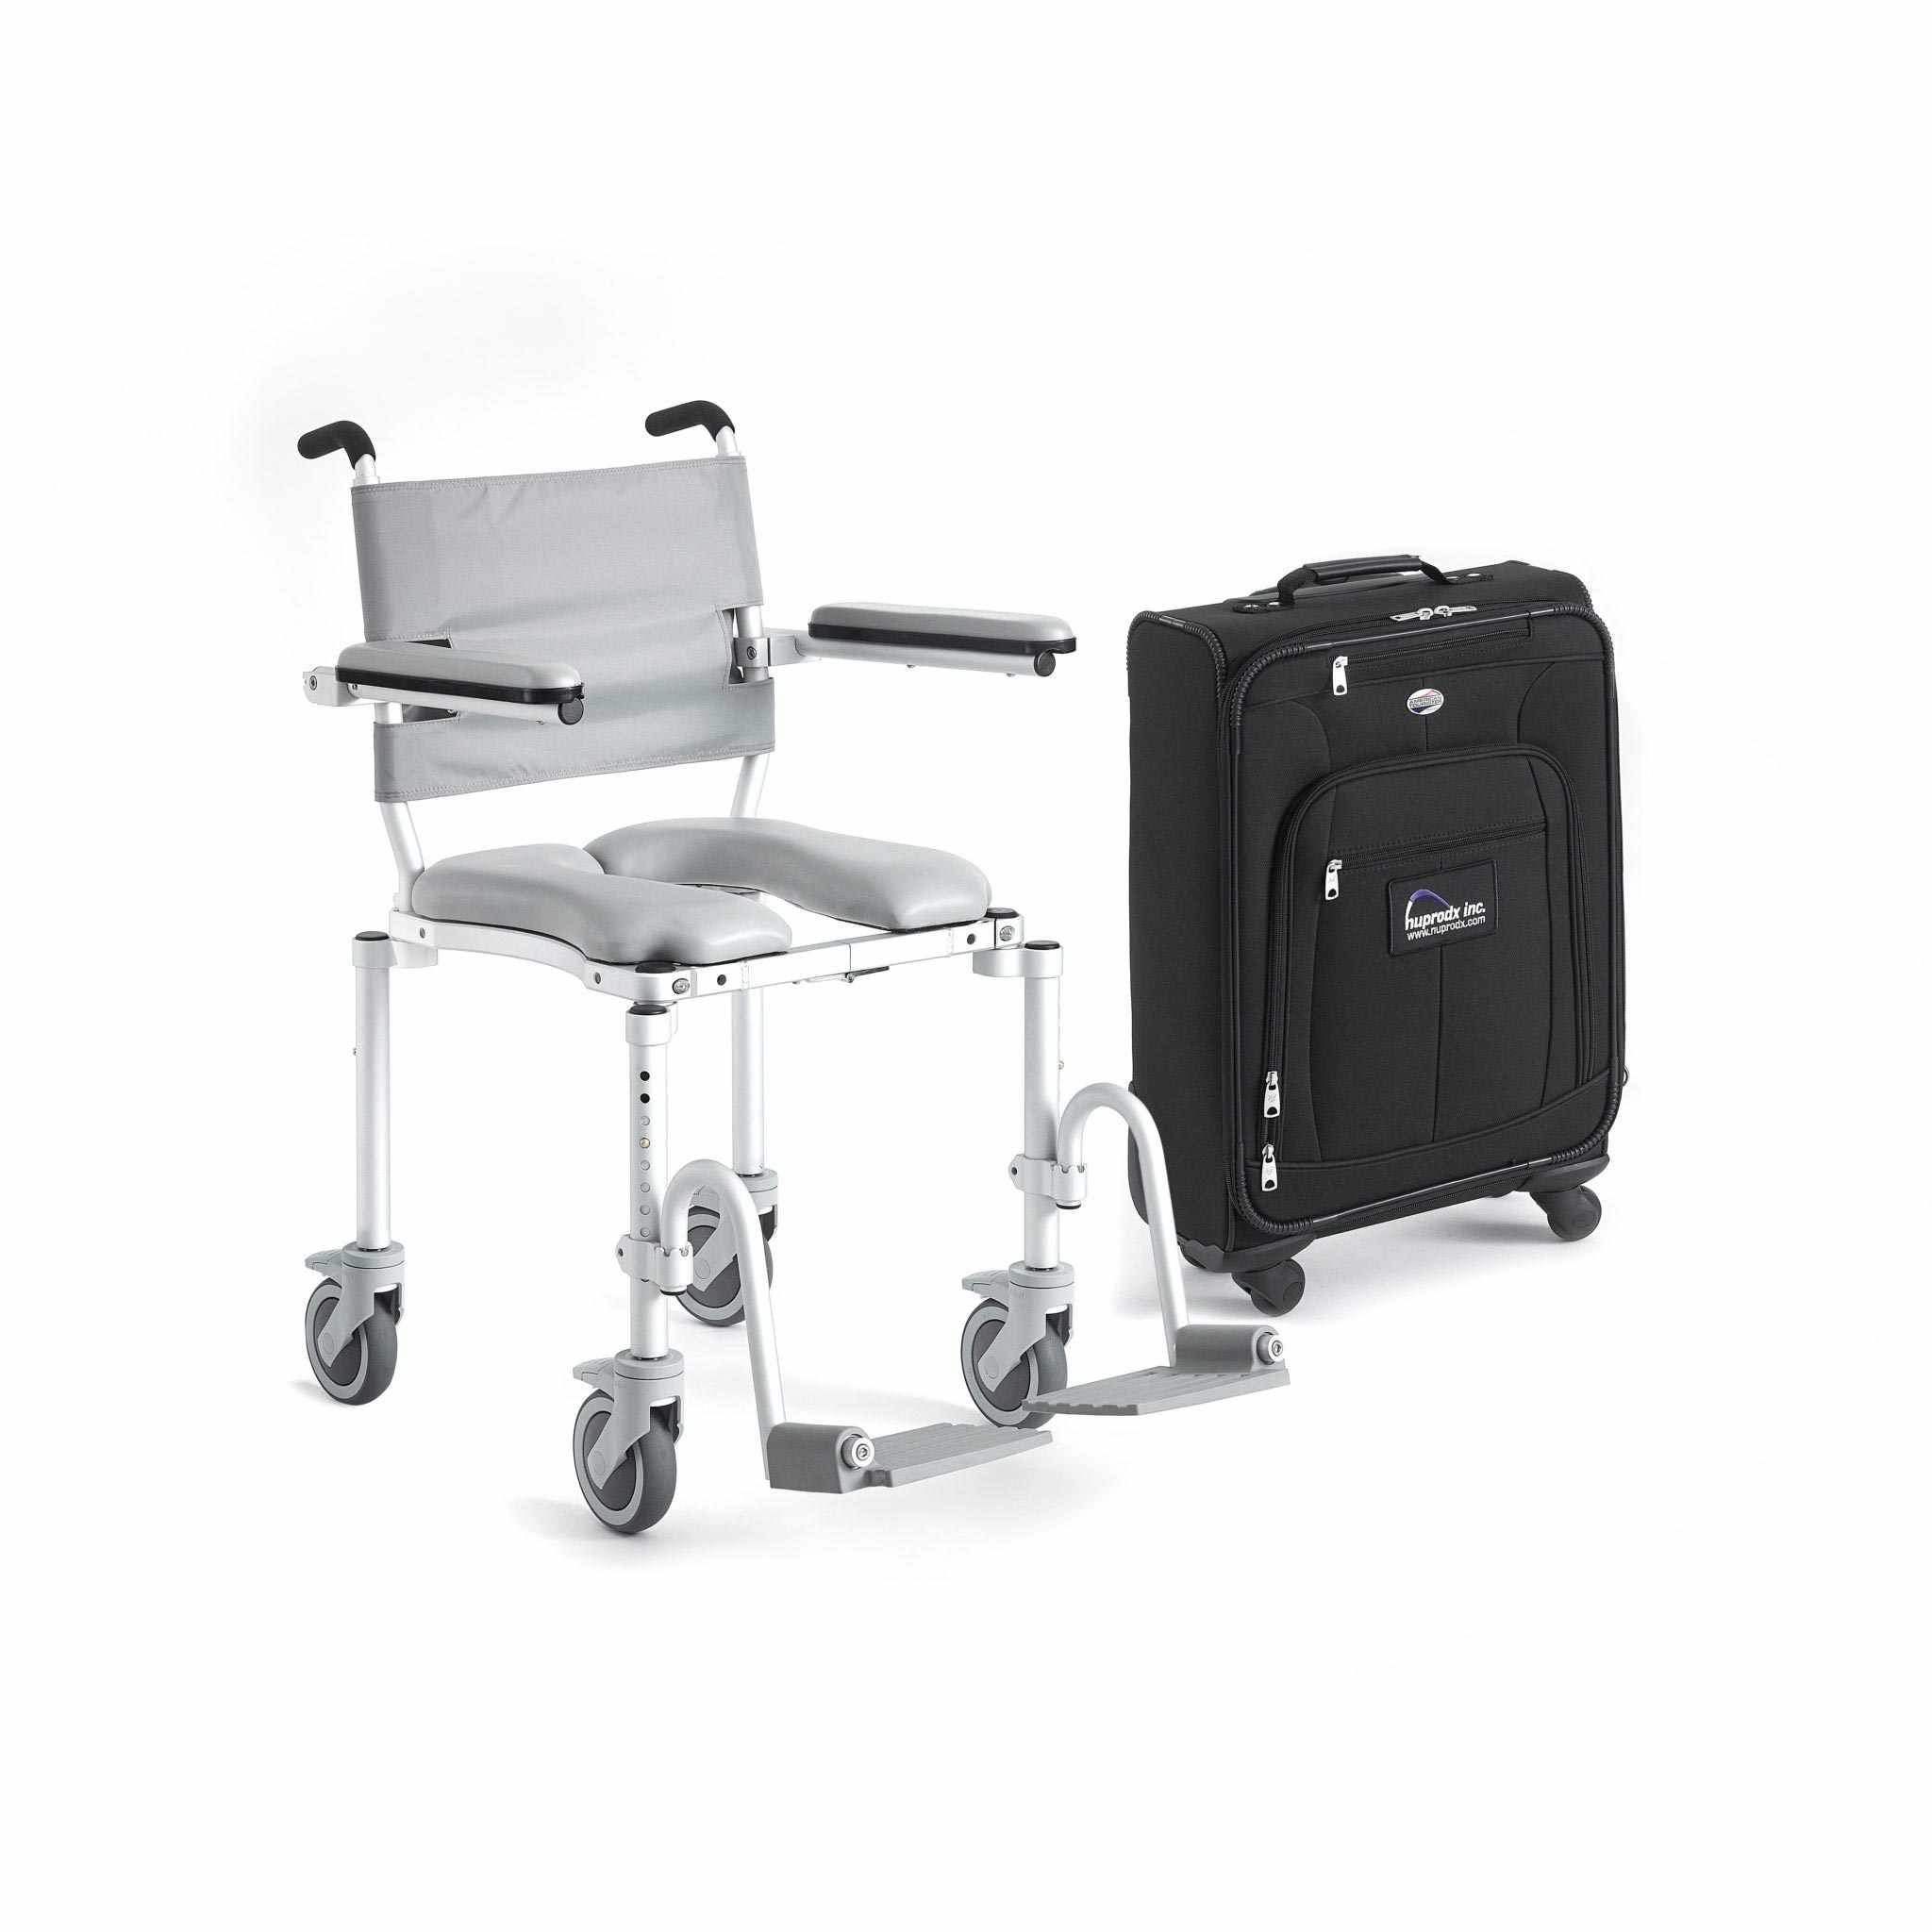 Nuprodx Multichair 4000Tx Roll-In Shower Commode Chair